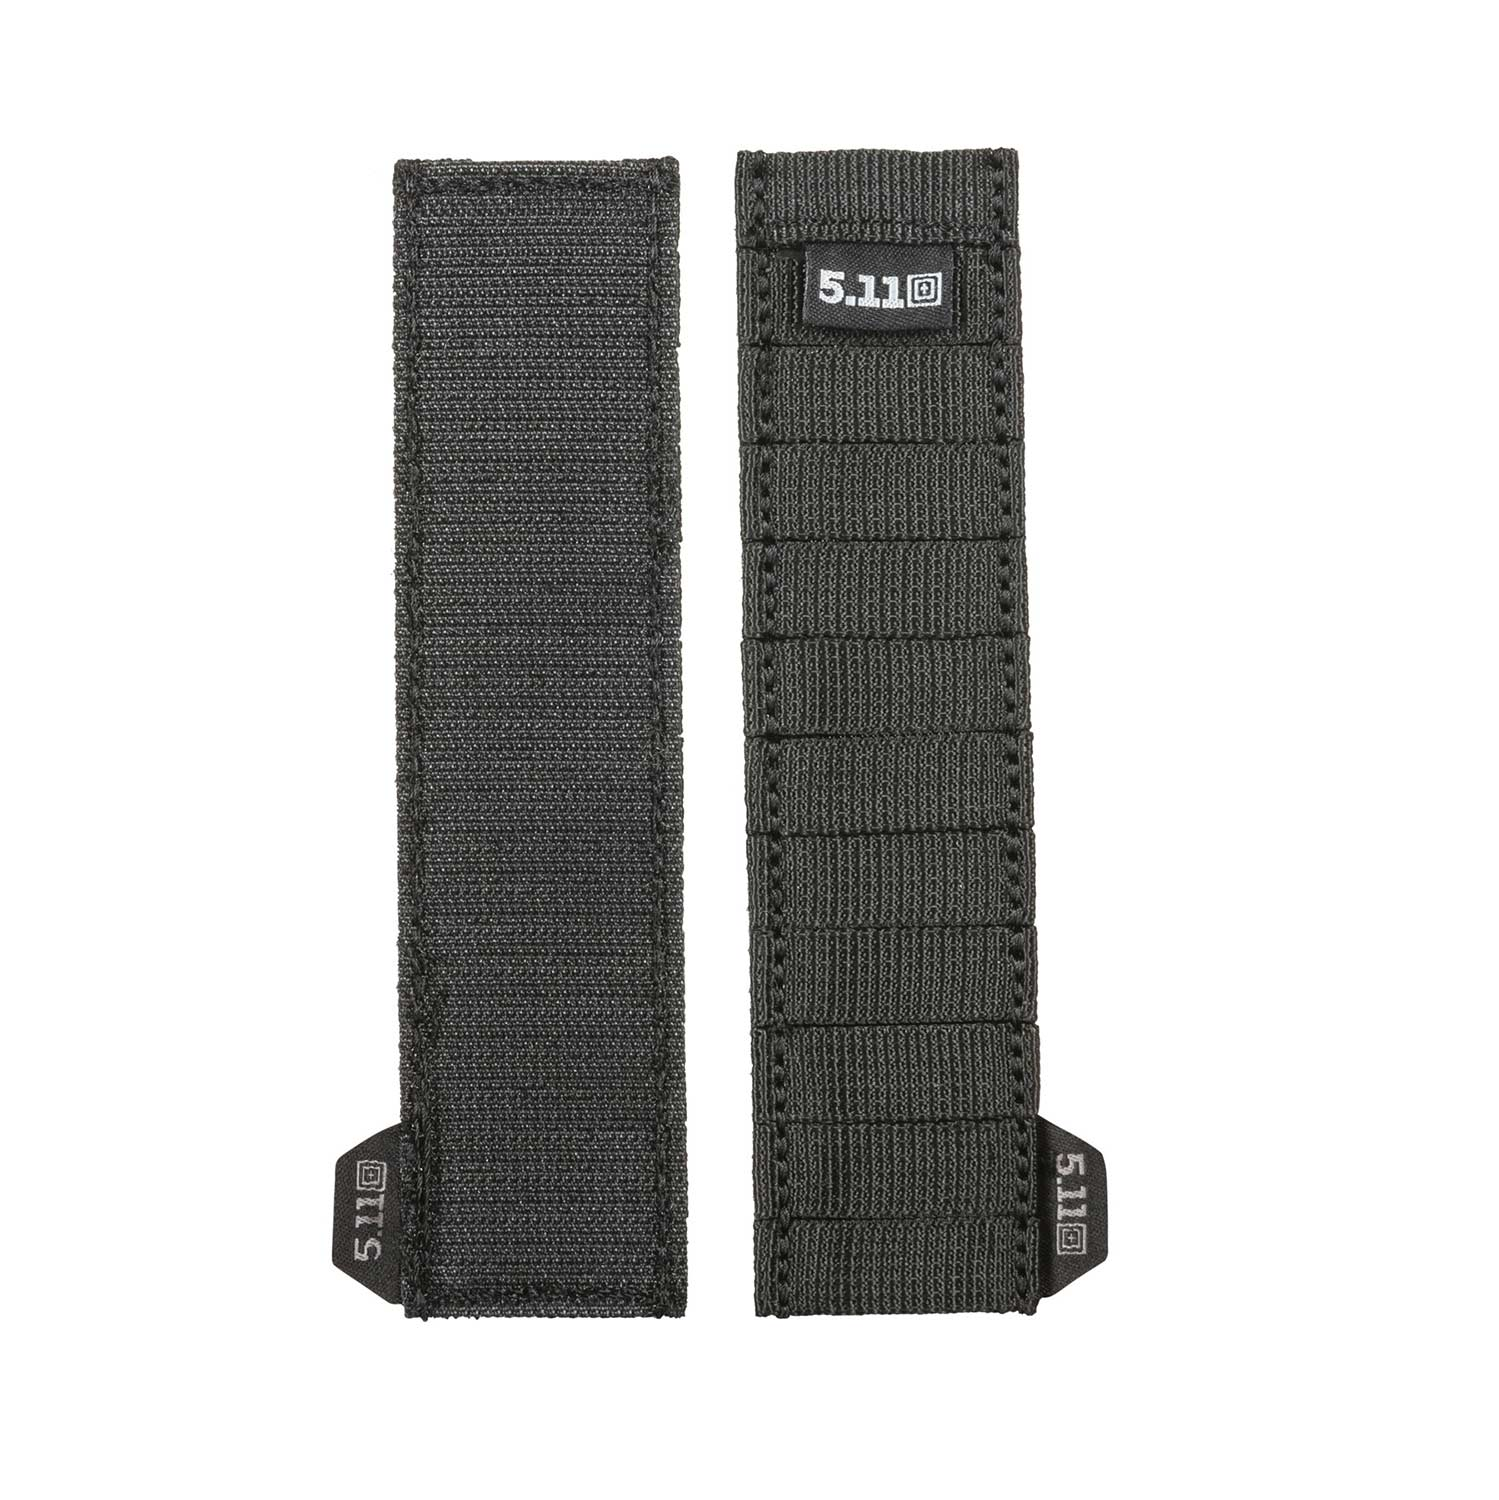 5.11 Tactical Flex Hook Adaptor Details